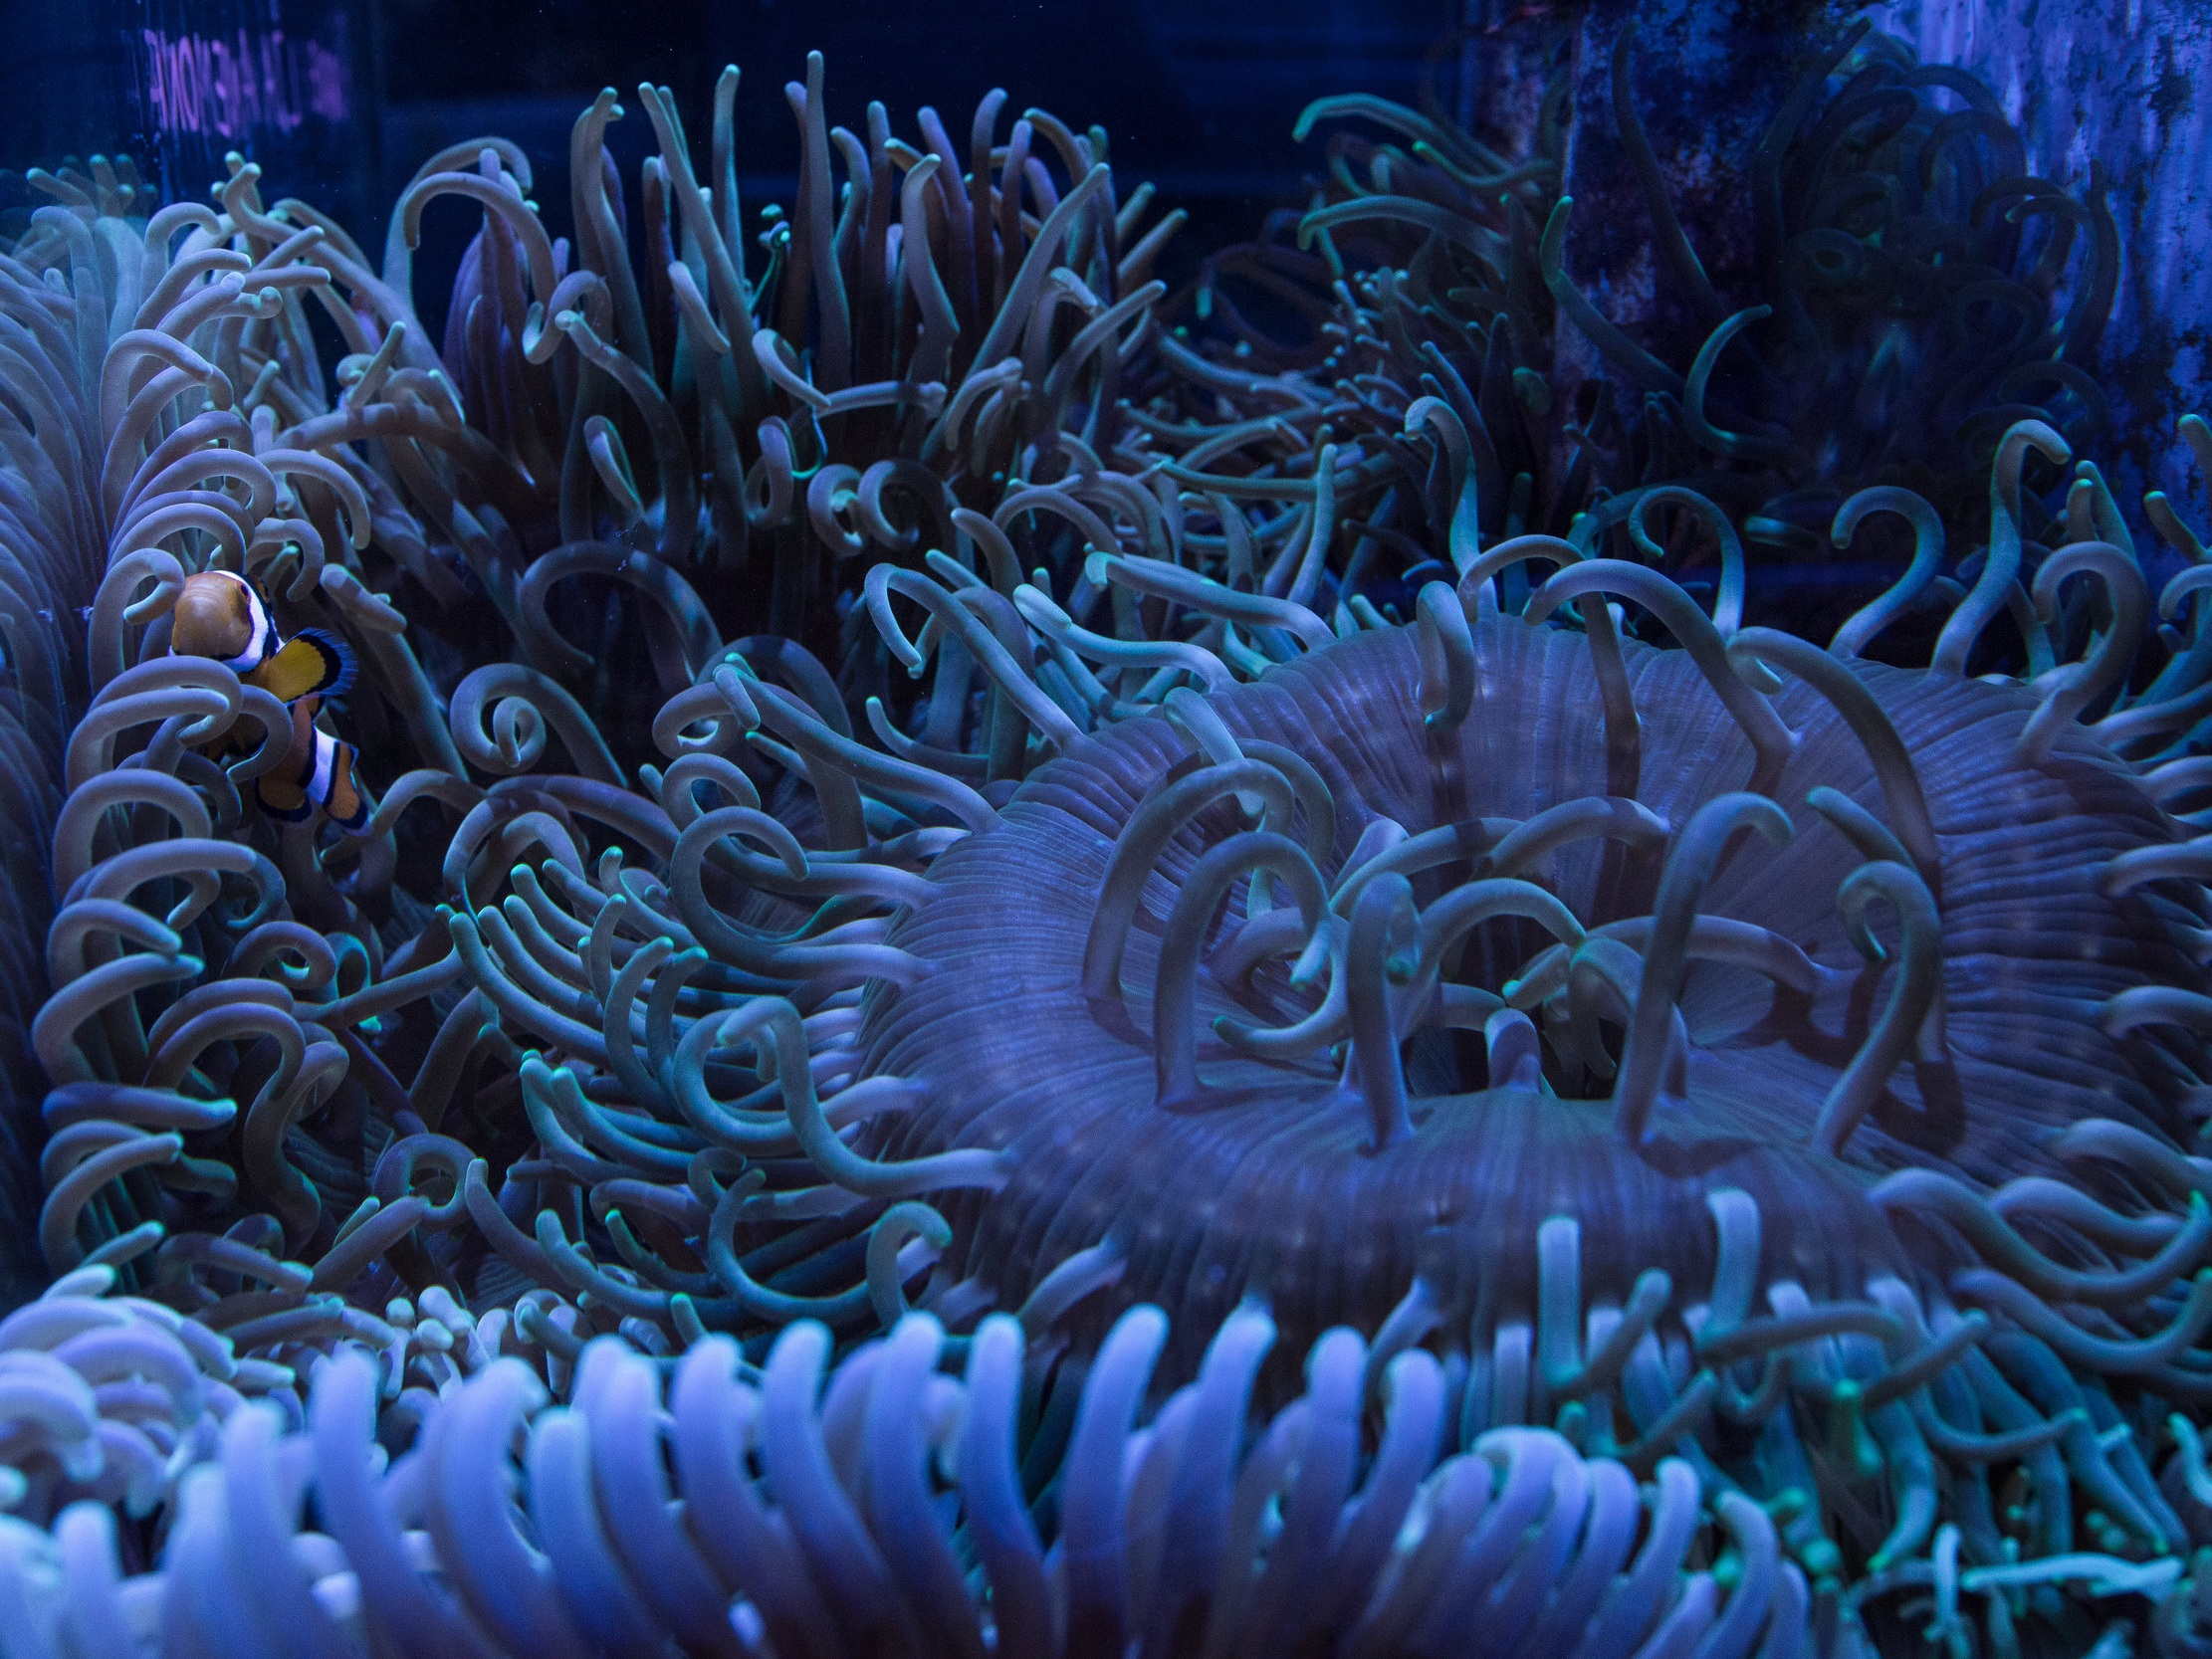 Coral reef futures pt 2: is there hope? -